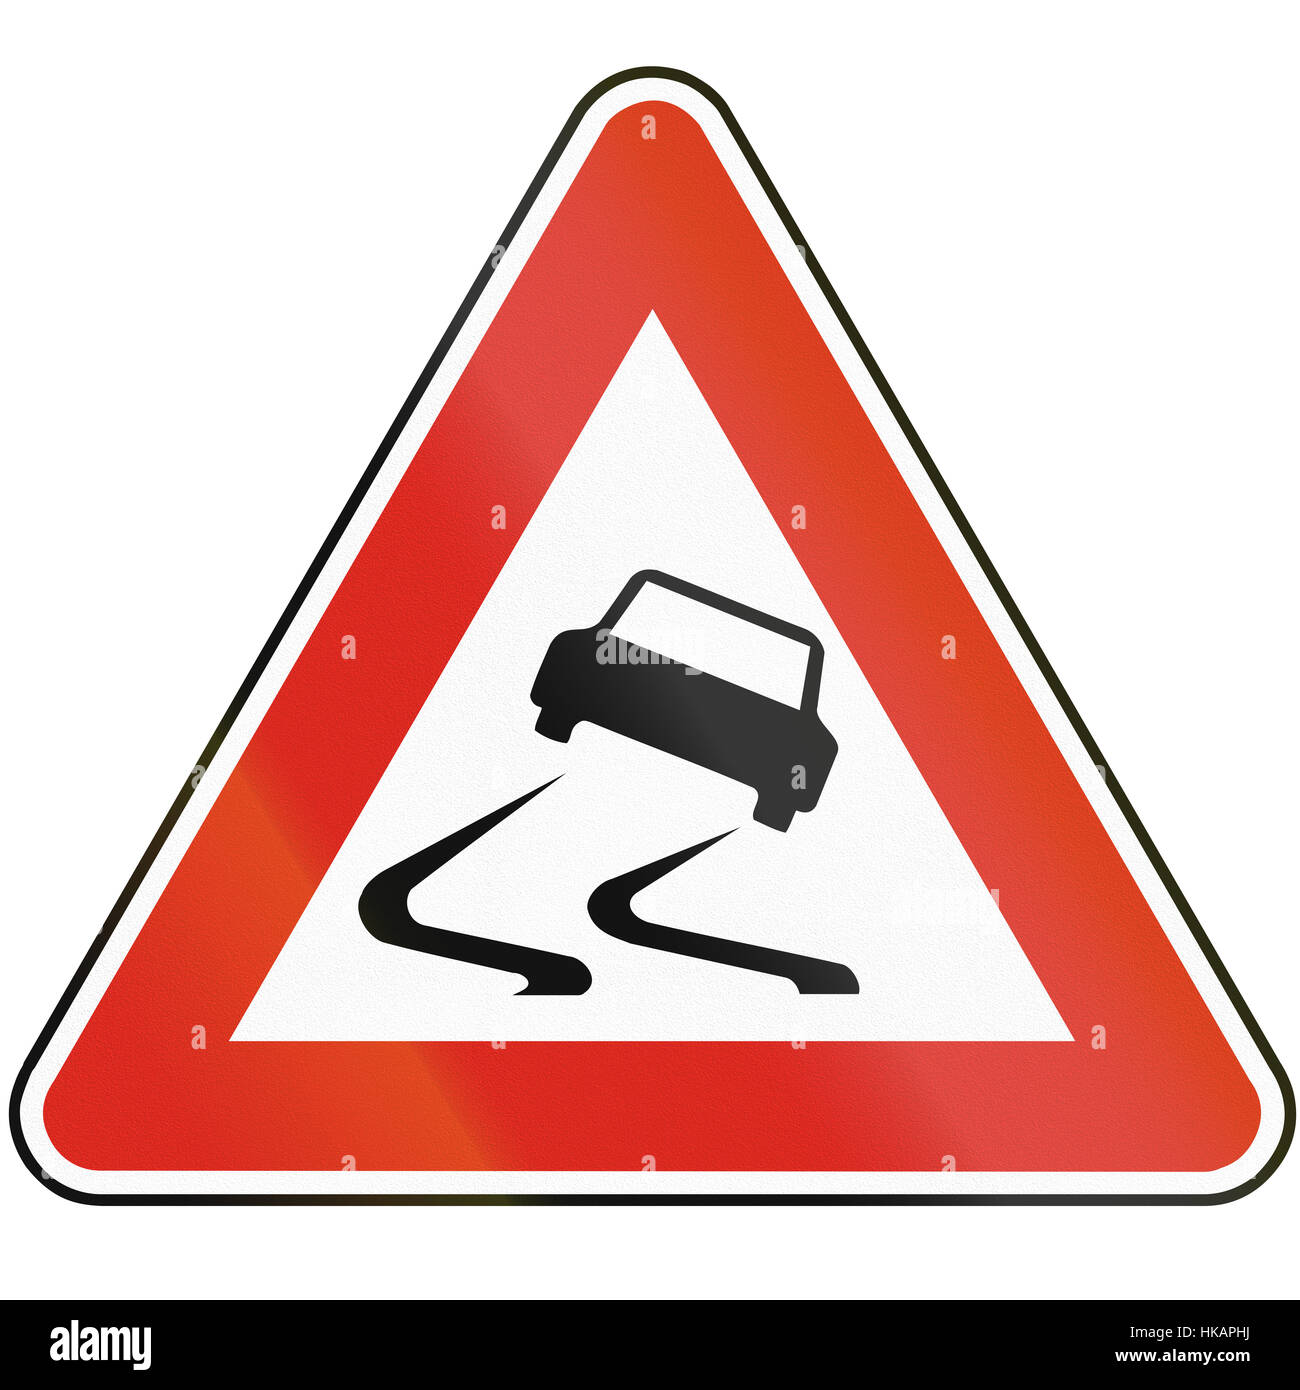 Road sign used in Slovakia - Risk of skidding. - Stock Image